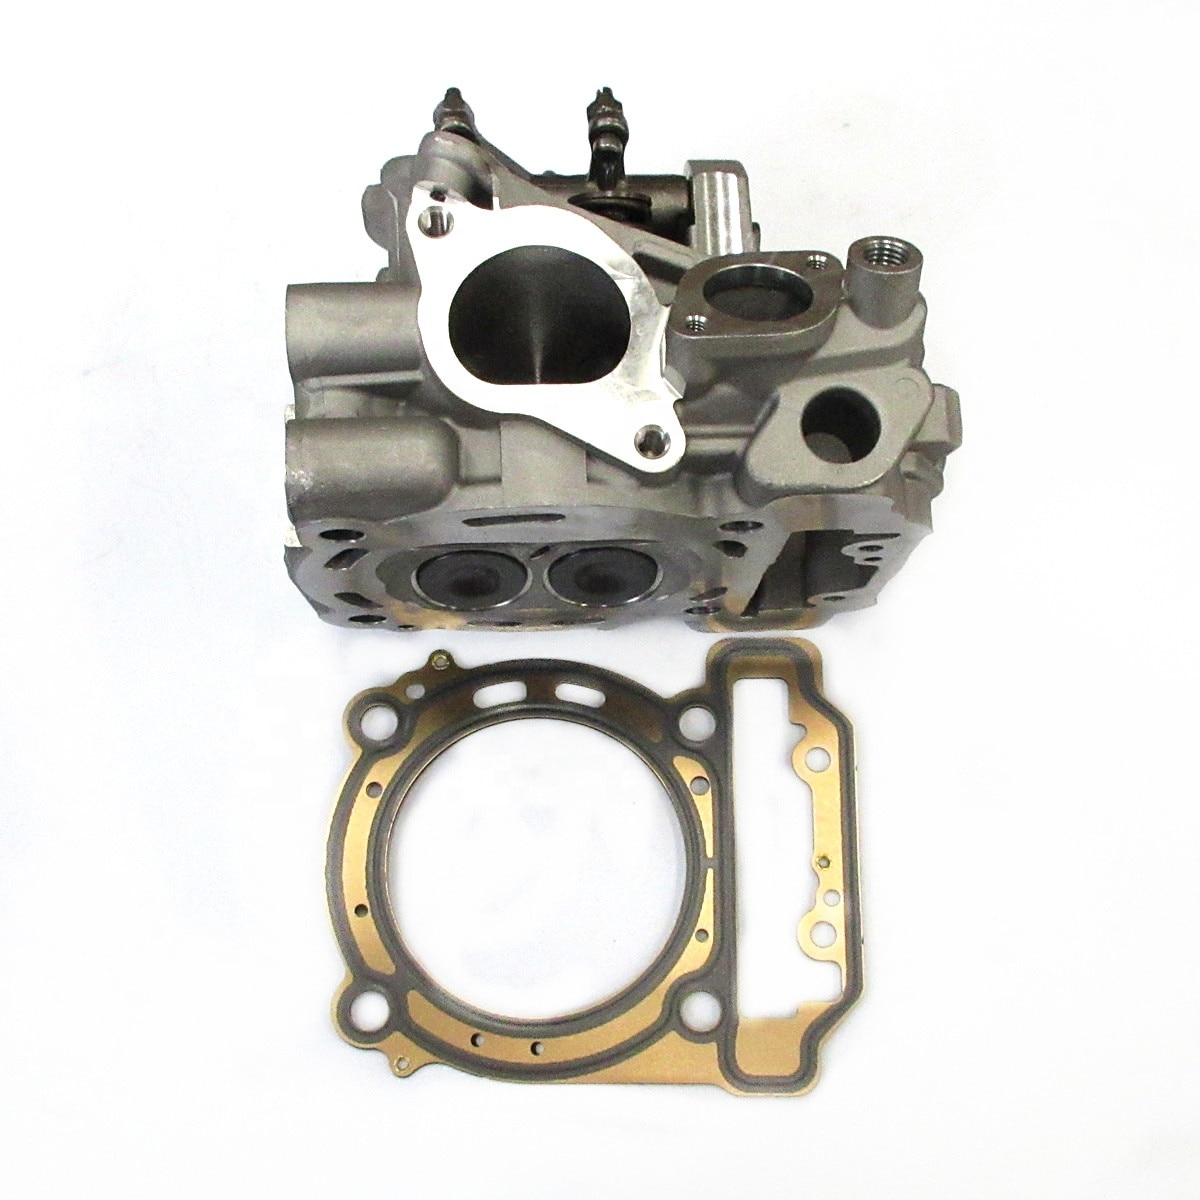 Cylinder head for Can-Am BRP 1000 ATV side by side enlarge